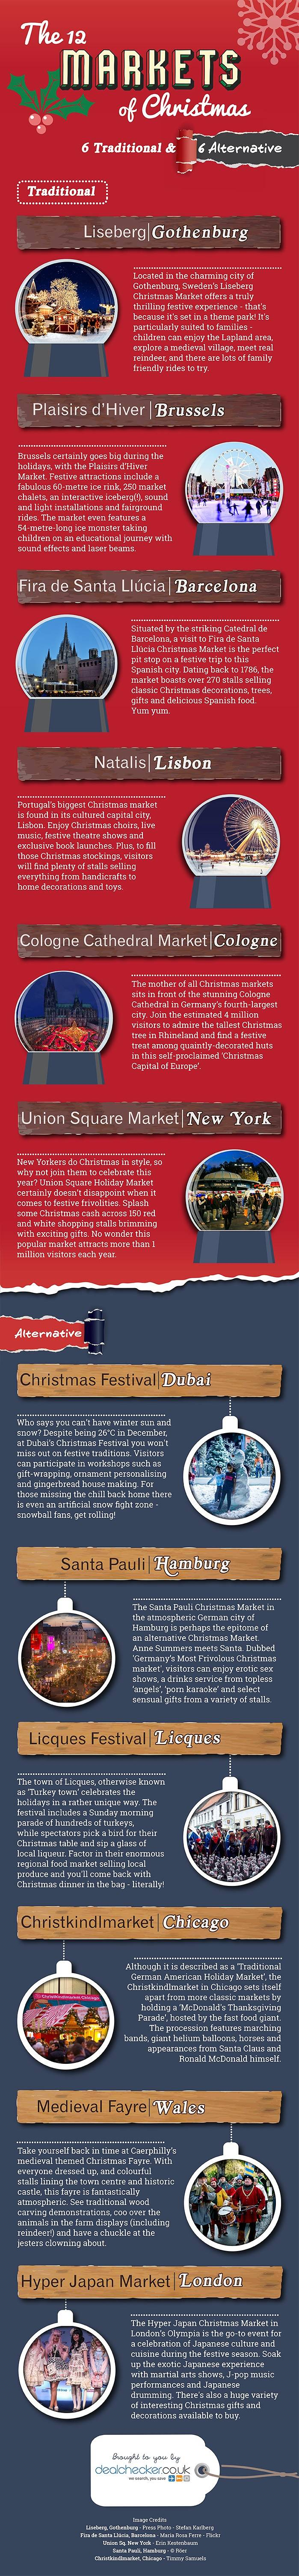 12 Markets of Christmas infographic